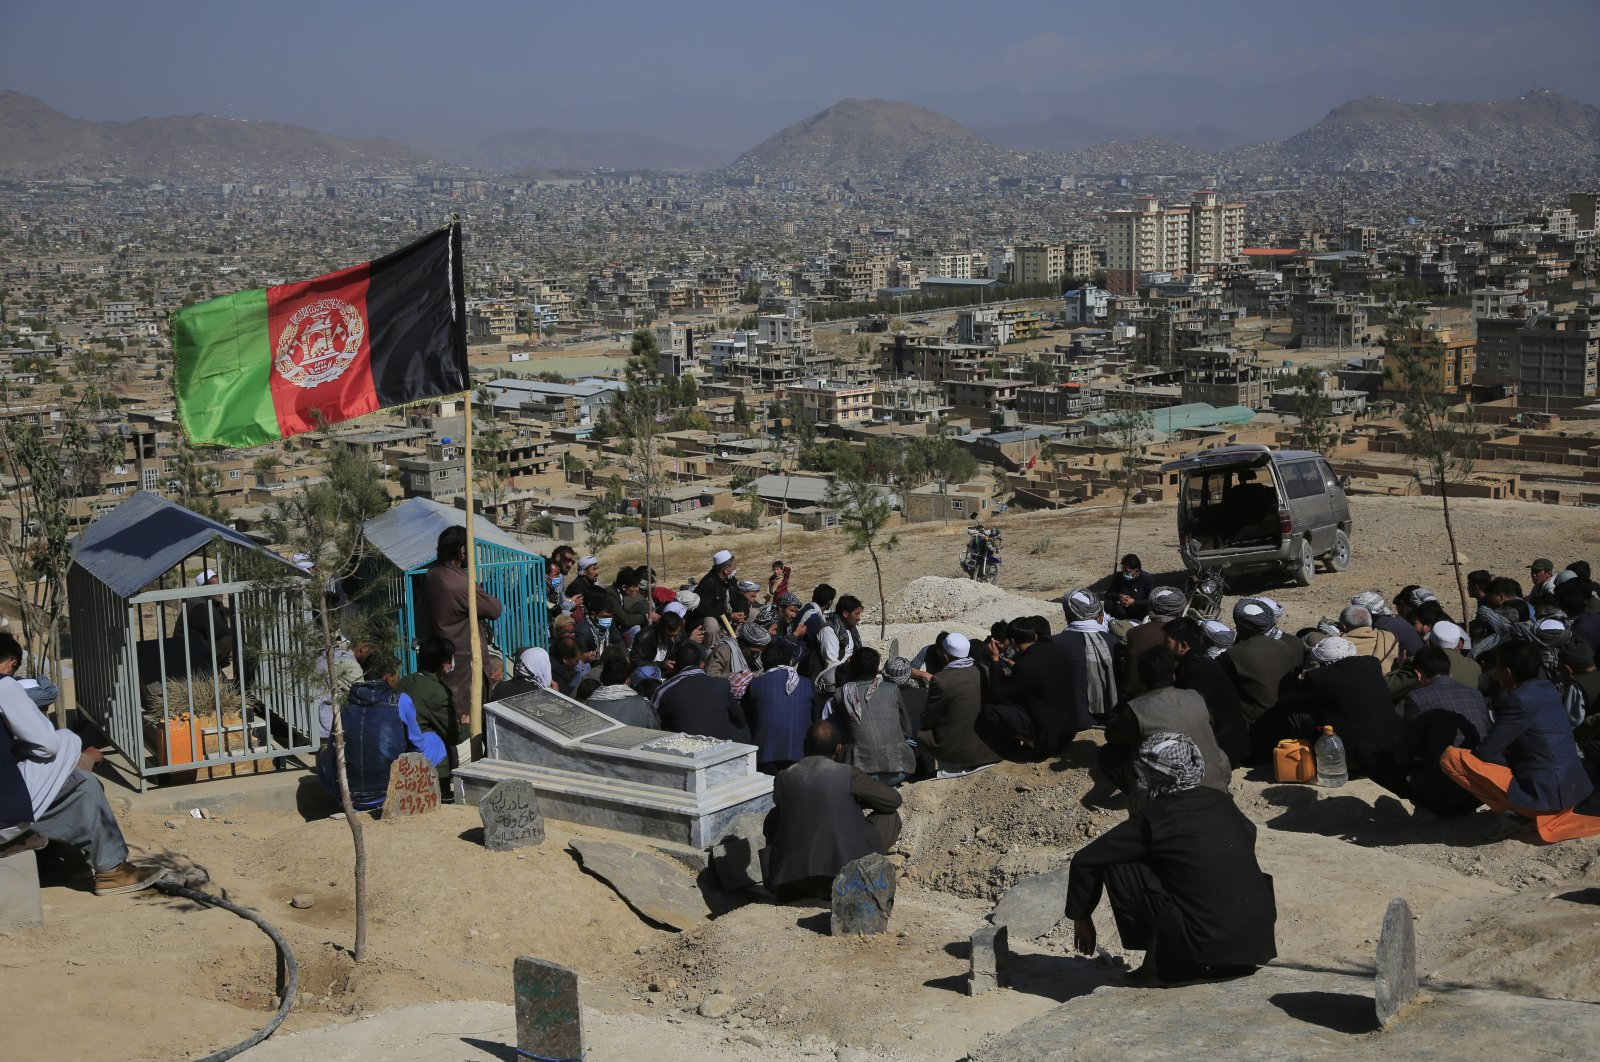 Afghan men bury a victim of Saturday's suicide attack that targeted an education center, in Kabul, Afghanistan, Oct. 25, 2020. (AP Photo)